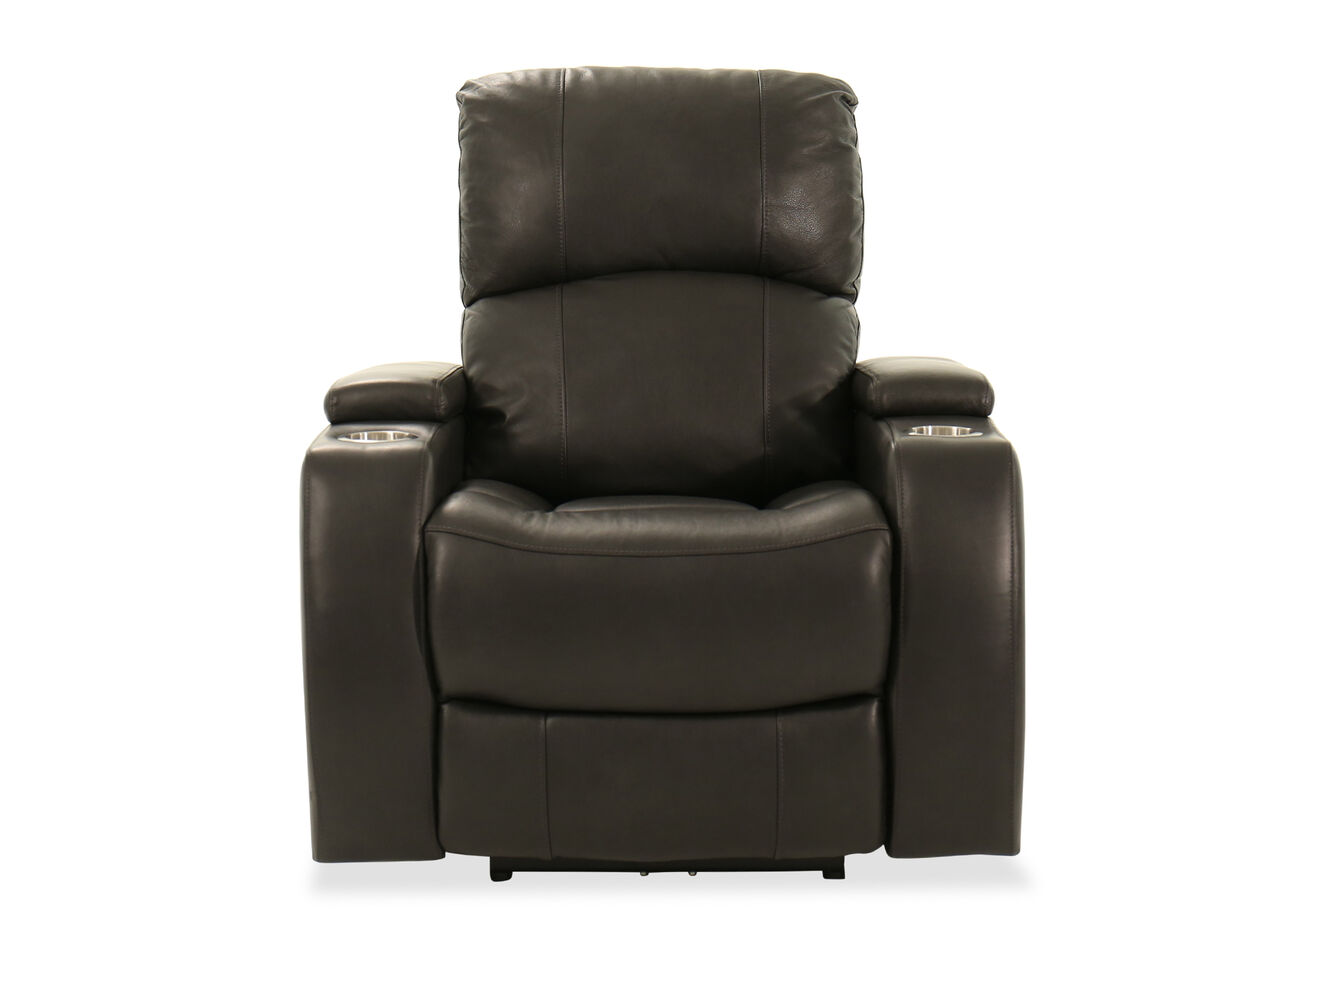 Reclining Lounge Chairs Promotion-Shop for Promotional